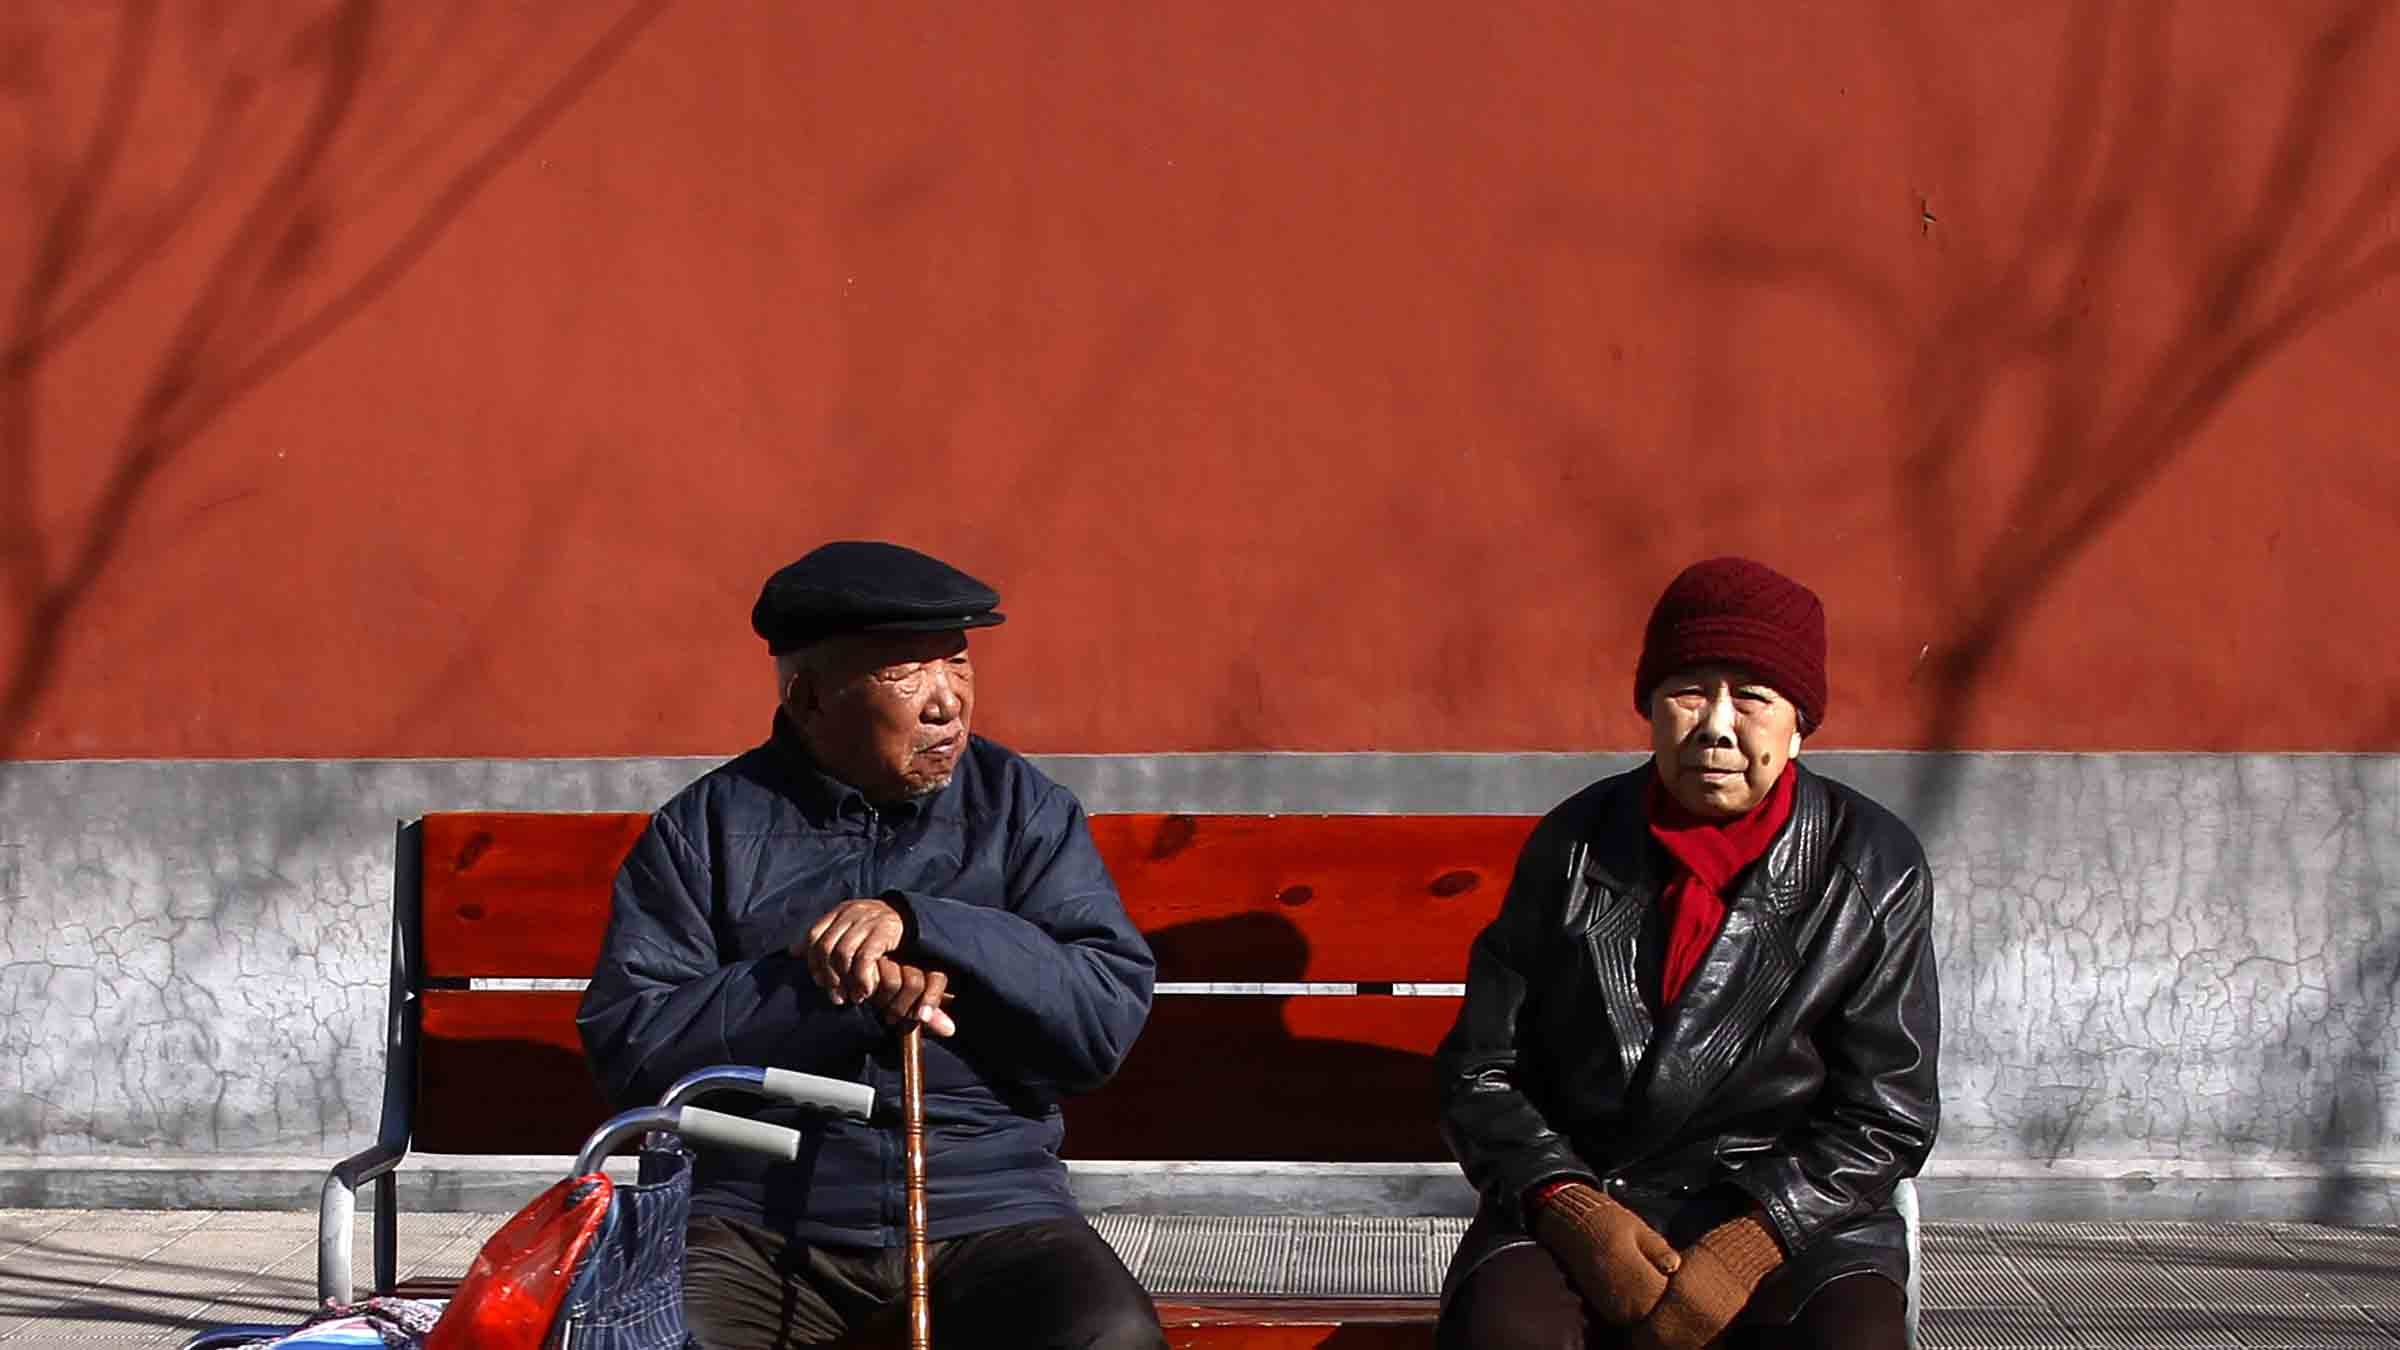 An elderly man with a walking stick sits on a bench next to a woman and a wheelchair in central Beijing